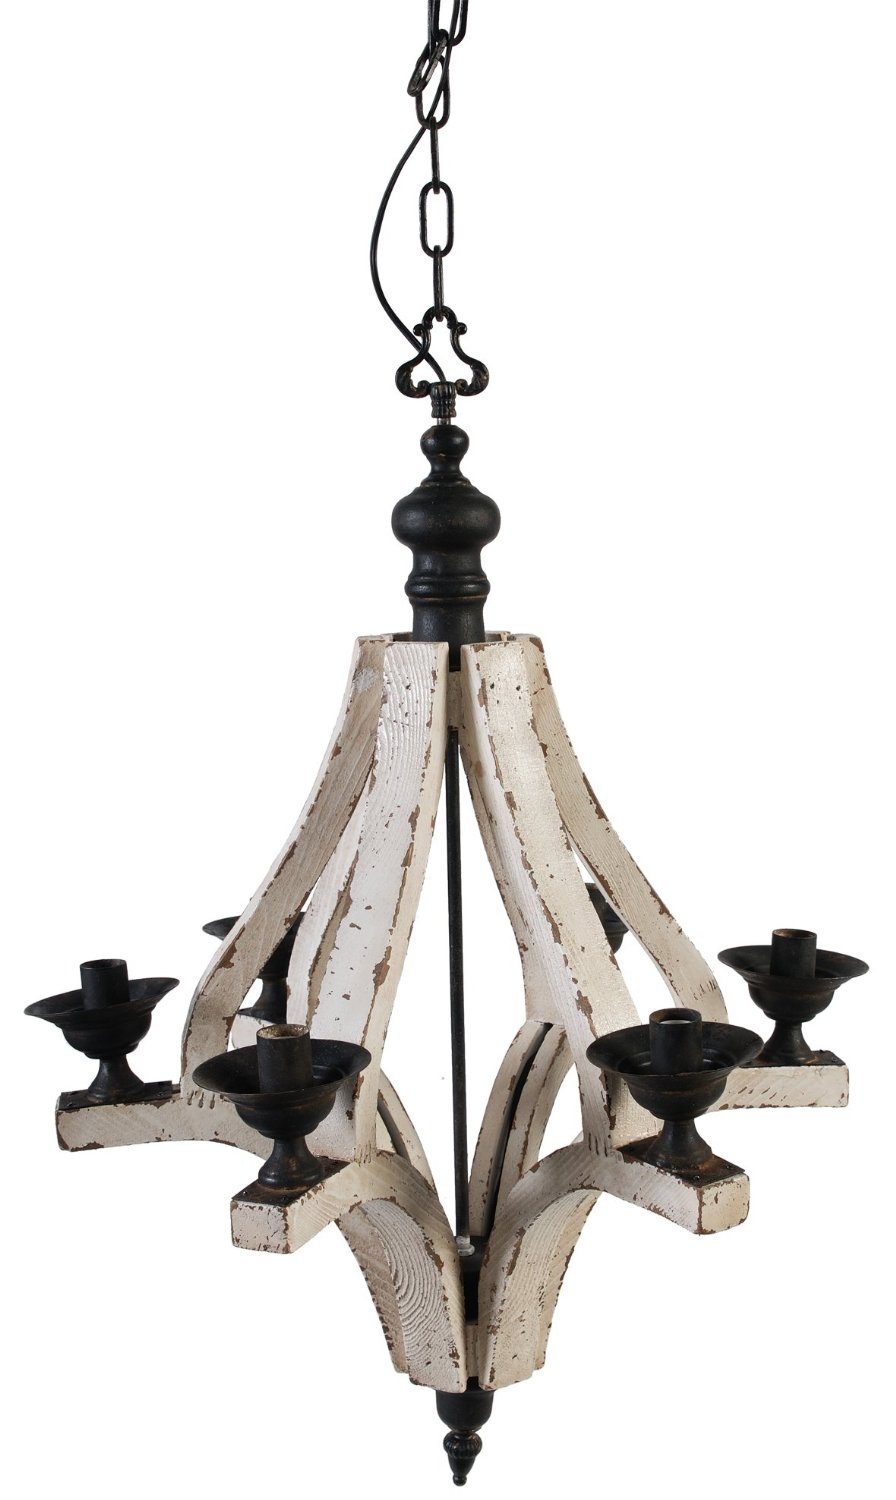 12 Best Rustic Wood And Metal Chandeliers Qosy Intended For Metal Chandeliers (Image 1 of 15)